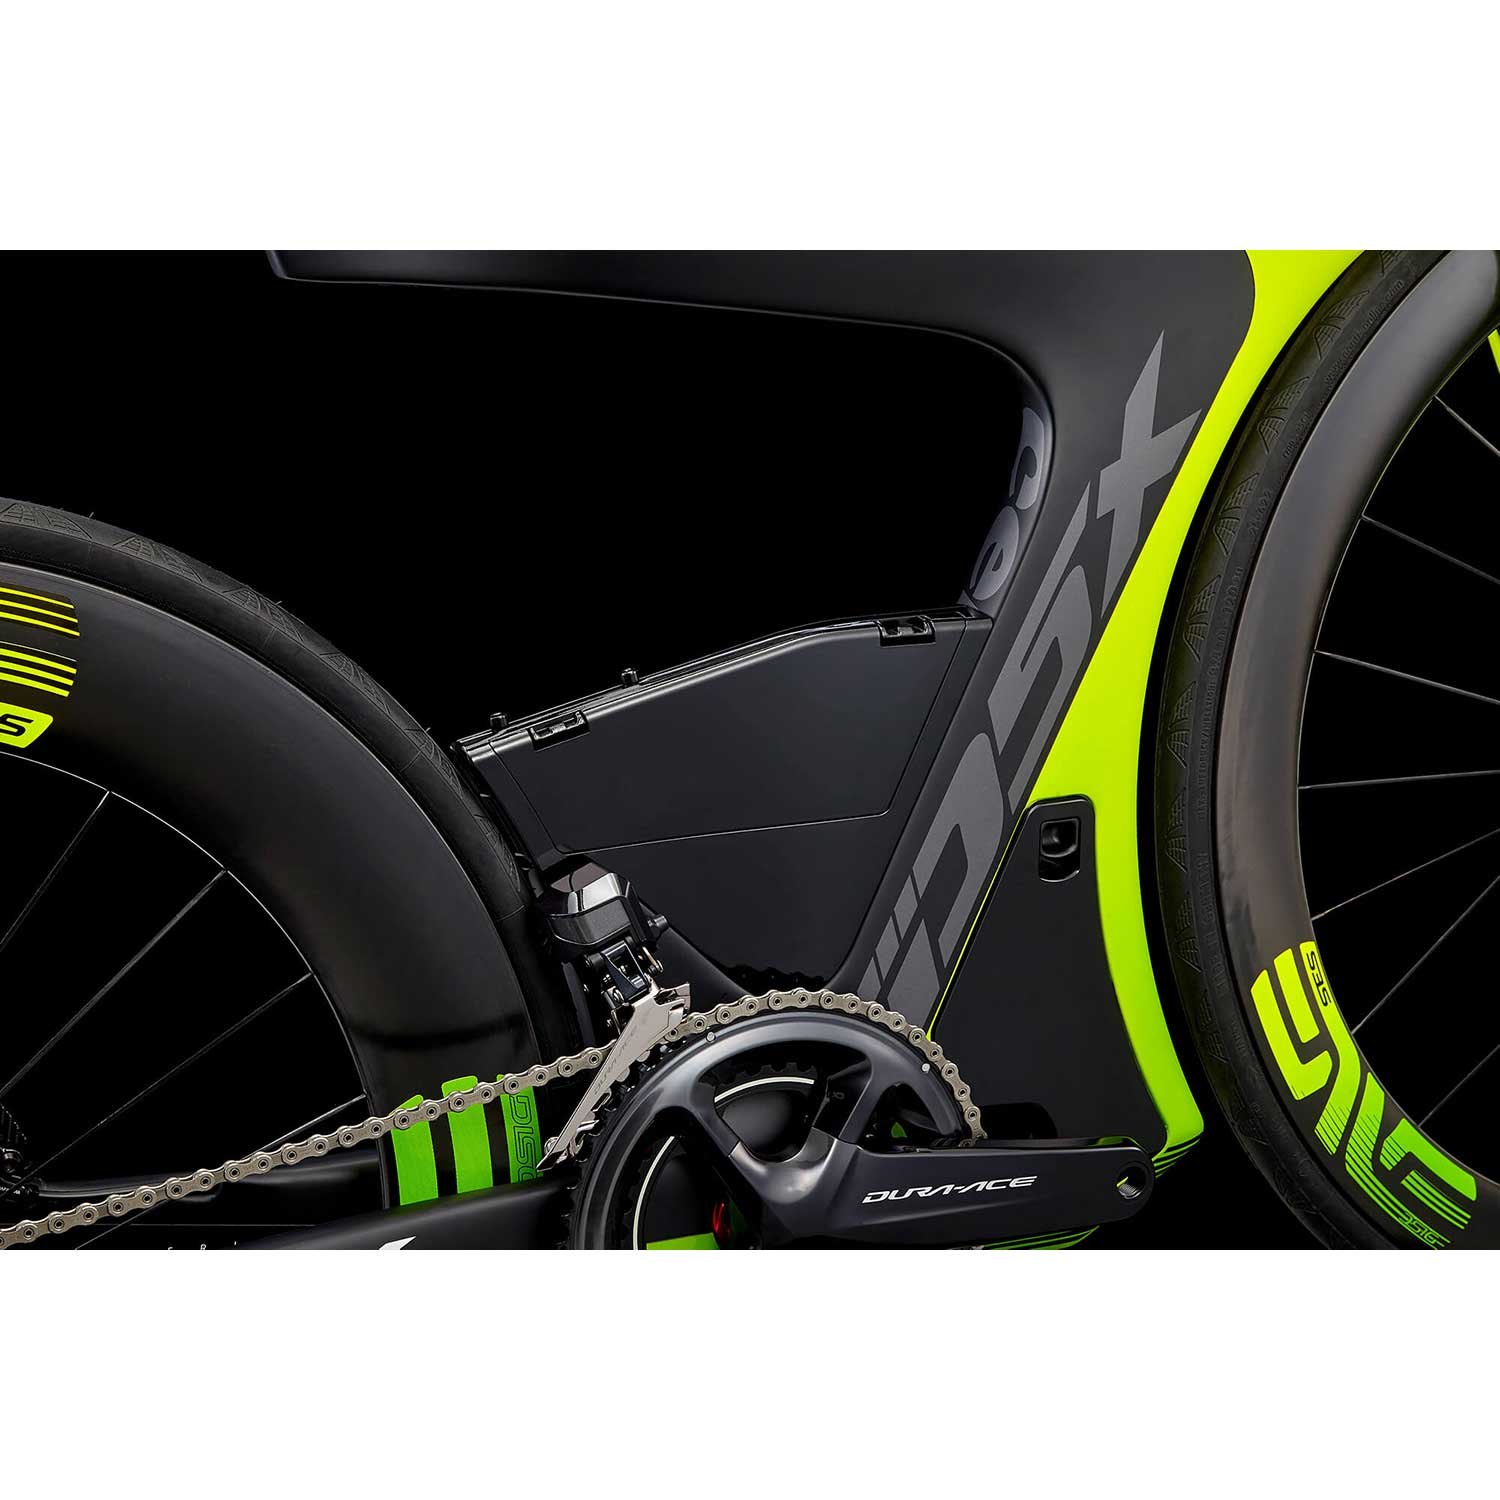 Cervelo P5x Disc Dura Ace Di2 9180 Triathlon Bike